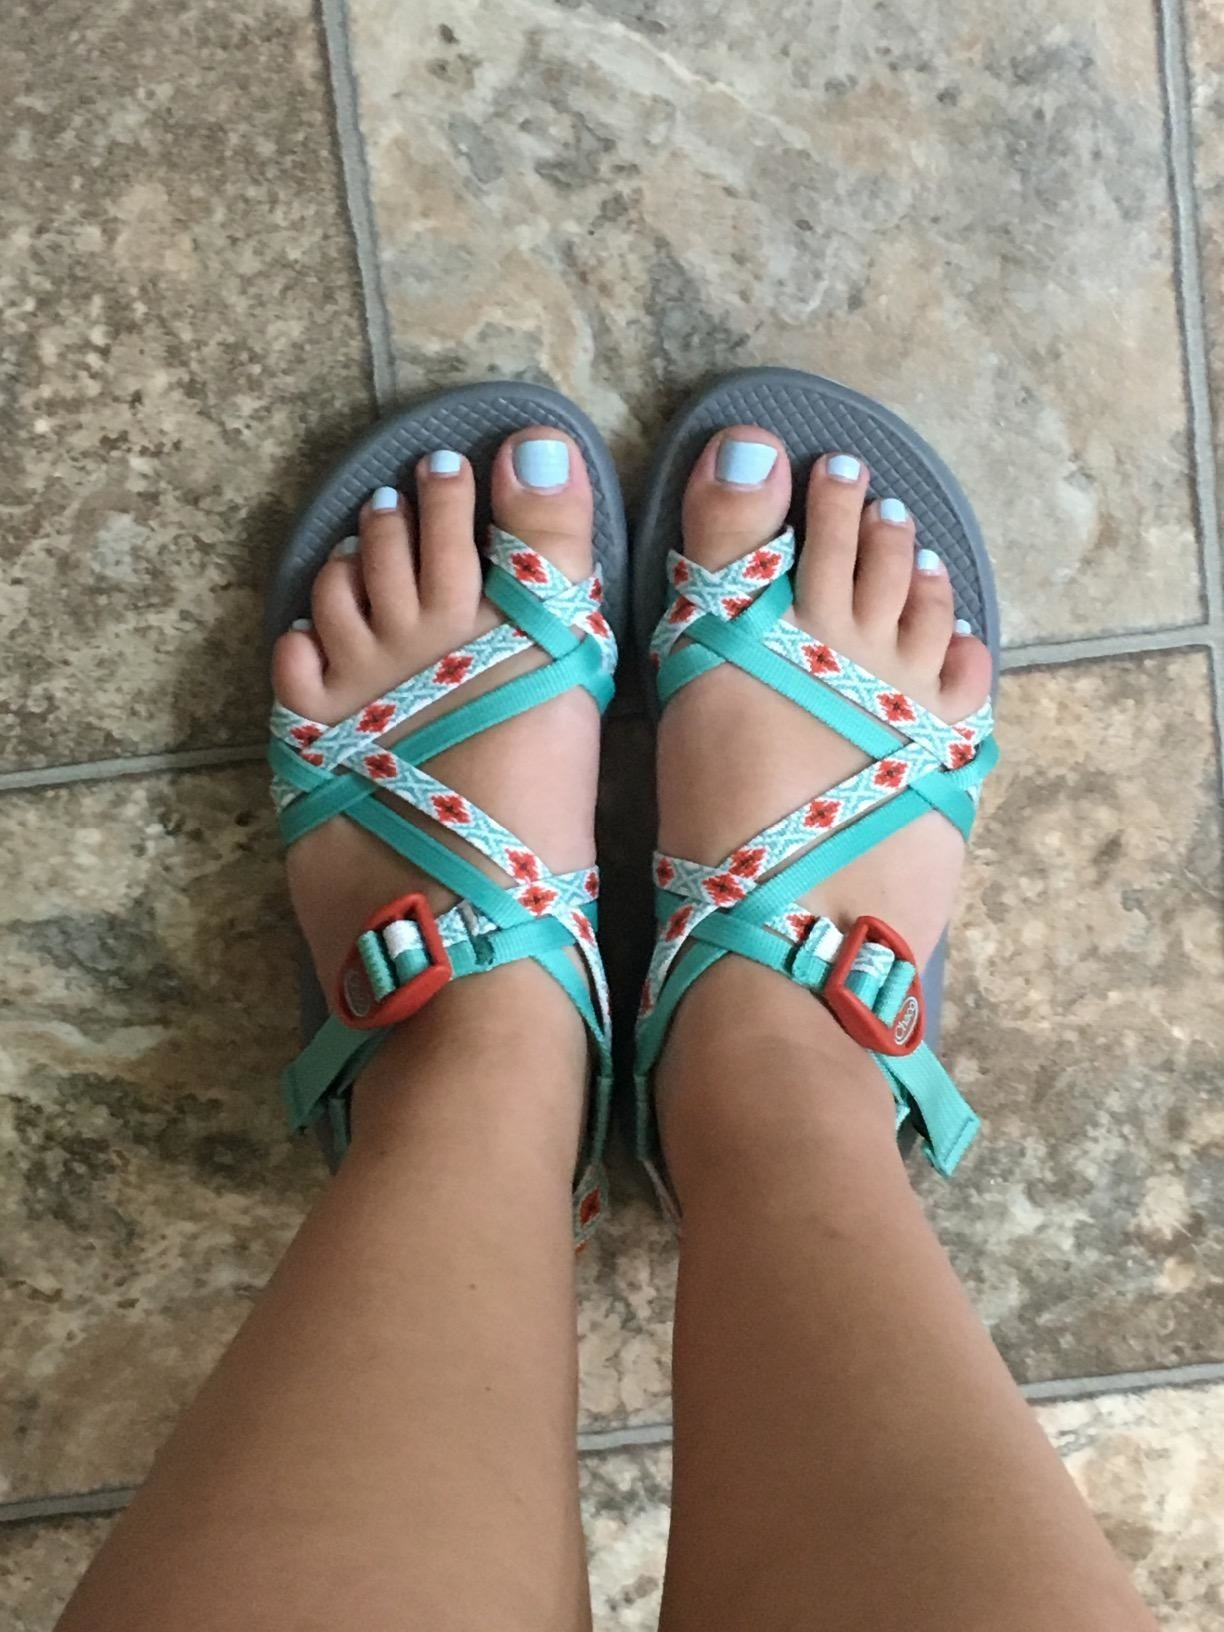 The Best Sandals For Flat Feet